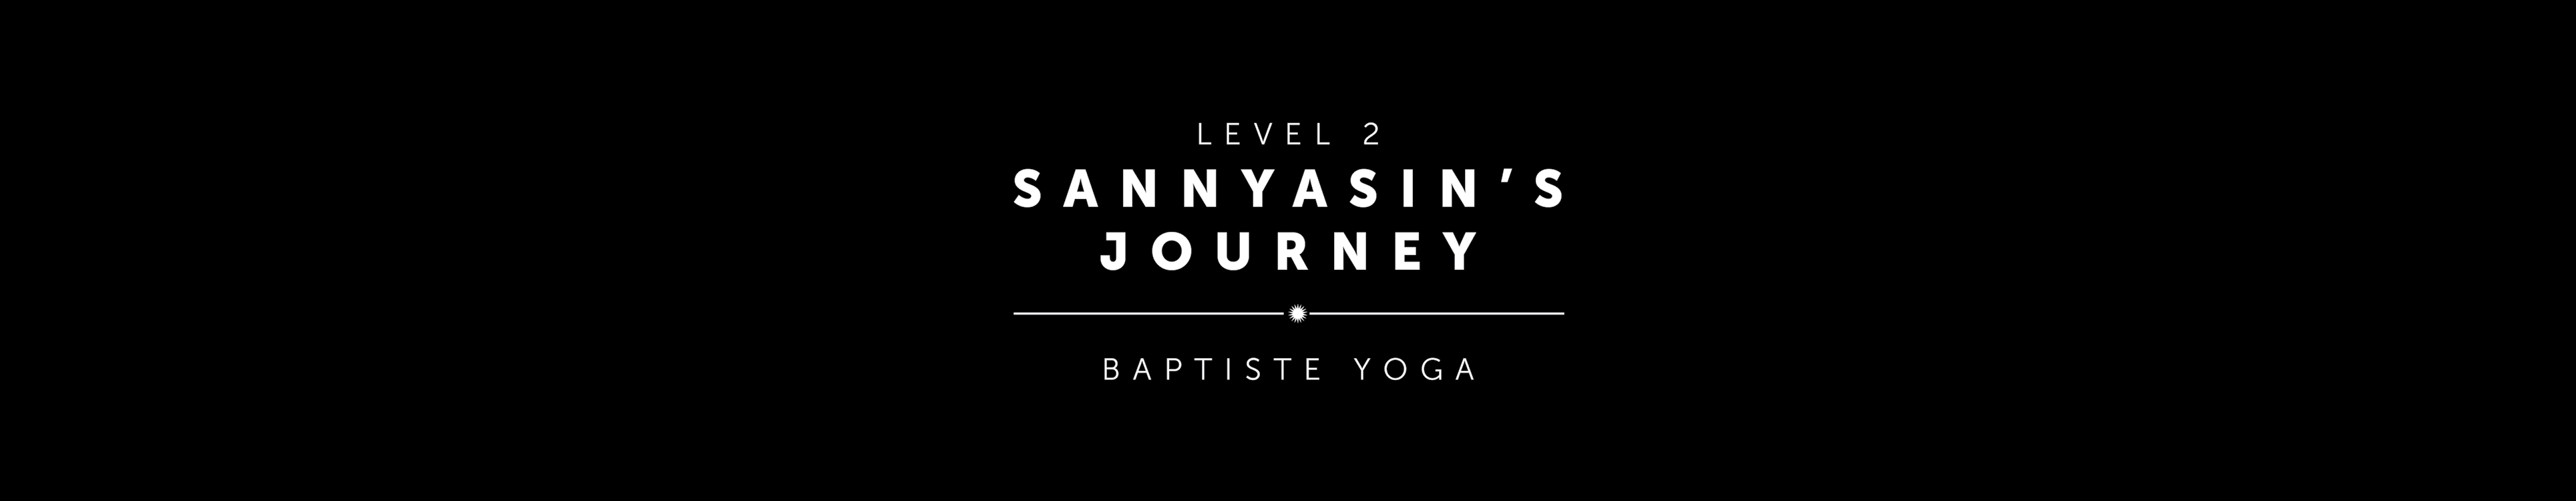 Level Two: The Sannyasin's Journey | Phoenicia, NY